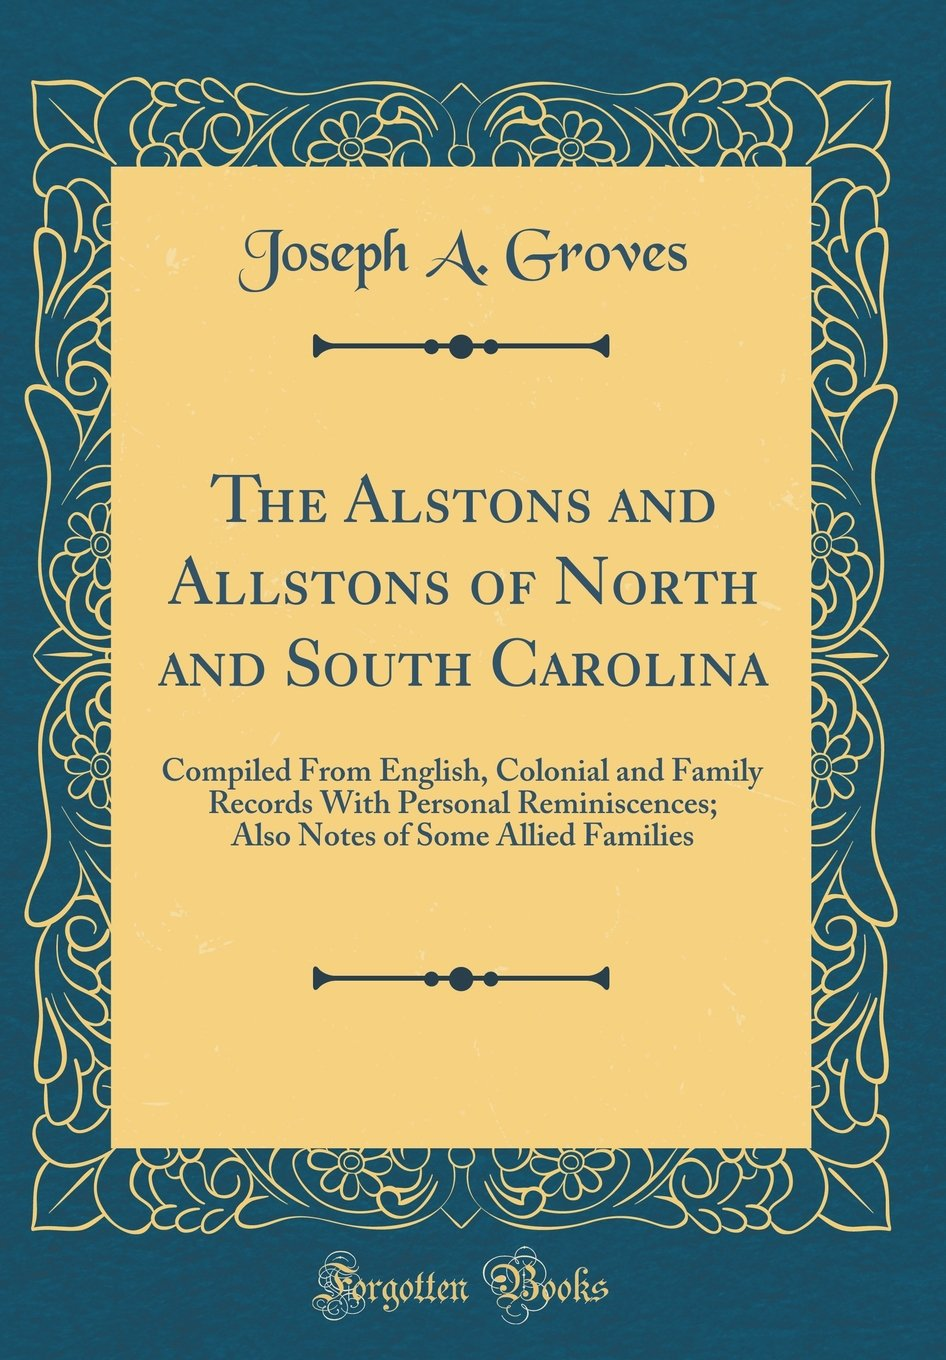 The Alstons and Allstons of North and South Carolina: Compiled From English, Colonial and Family Records With Personal Reminiscences; Also Notes of Some Allied Families (Classic Reprint)